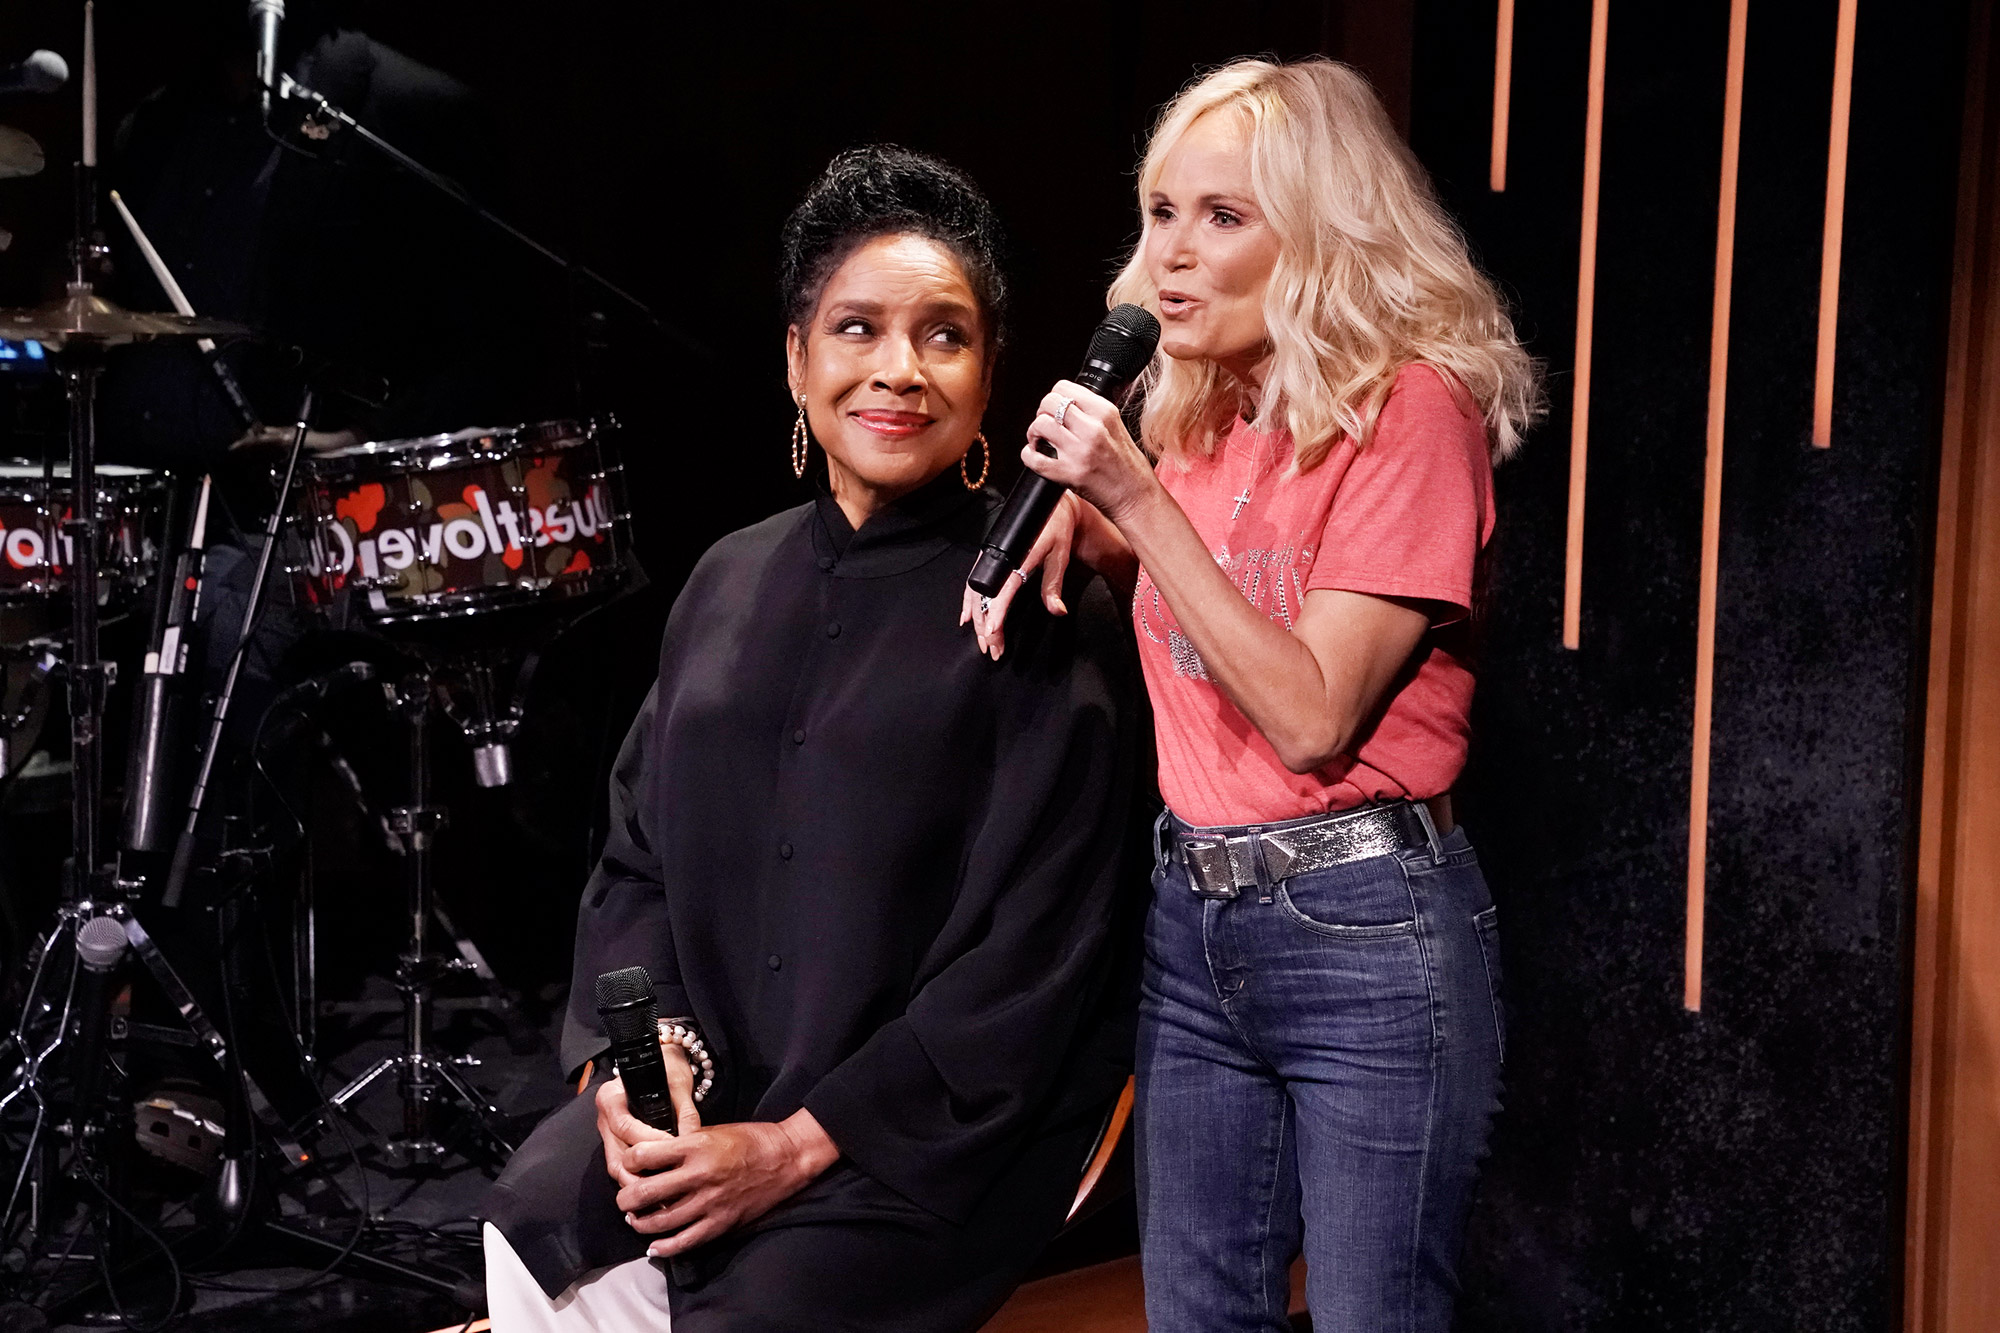 """THE TONIGHT SHOW STARRING JIMMY FALLON -- Episode 1475 -- Pictured: (l-r) Actress Phylicia Rashad and actress Kristin Chenoweth during """"Broadway Is Back"""" on Tuesday, June 8, 2021"""